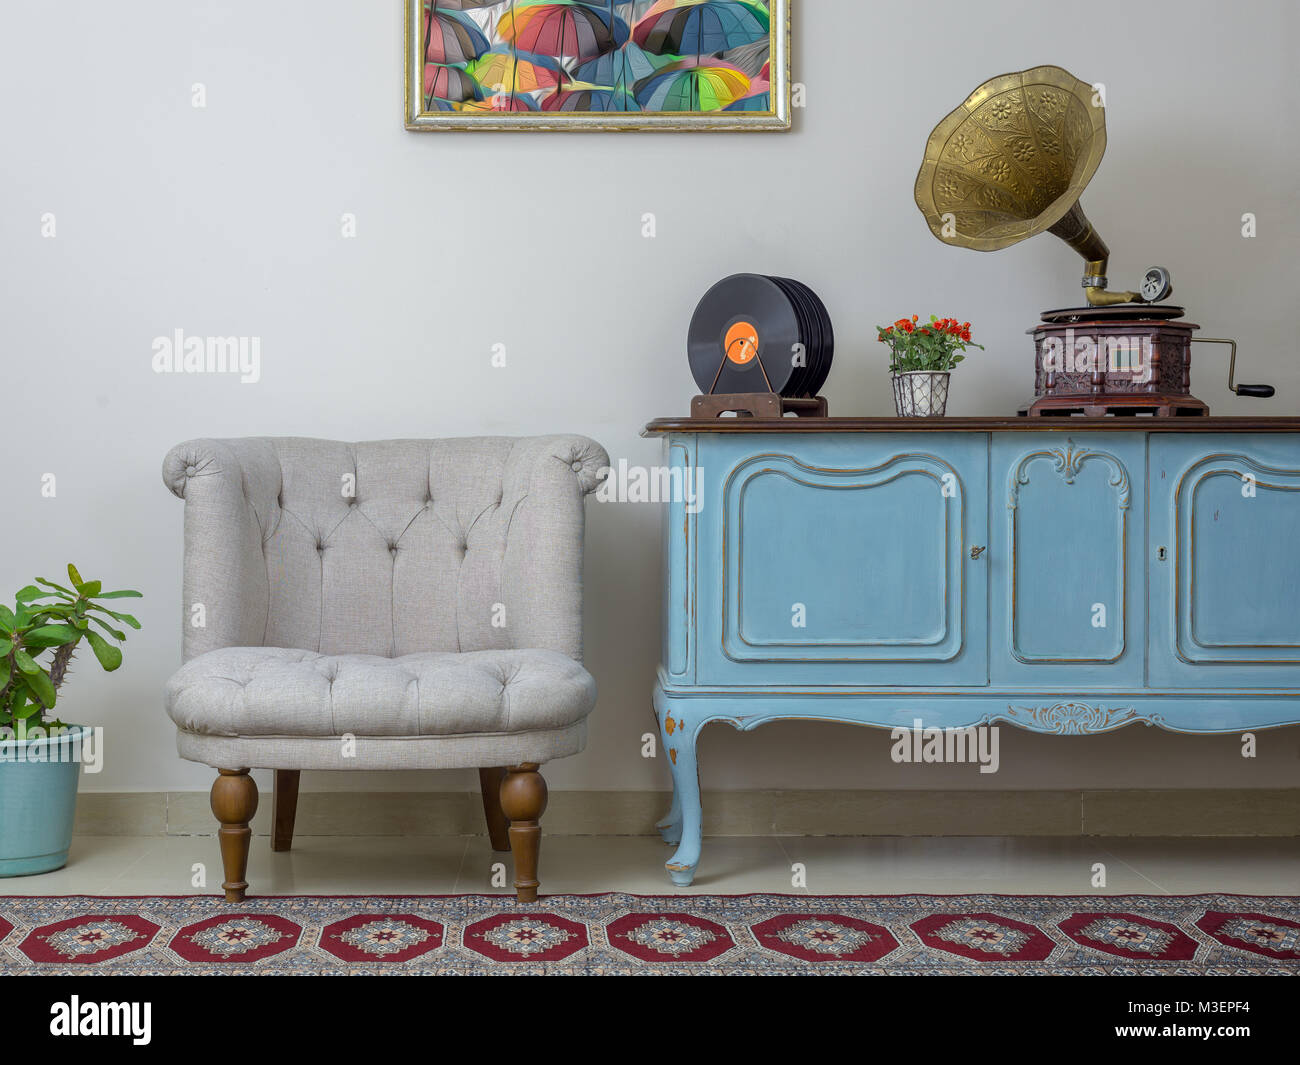 Vintage interior of retro off white armchair, vintage wooden light blue sideboard, old phonograph (gramophone) and - Stock Image